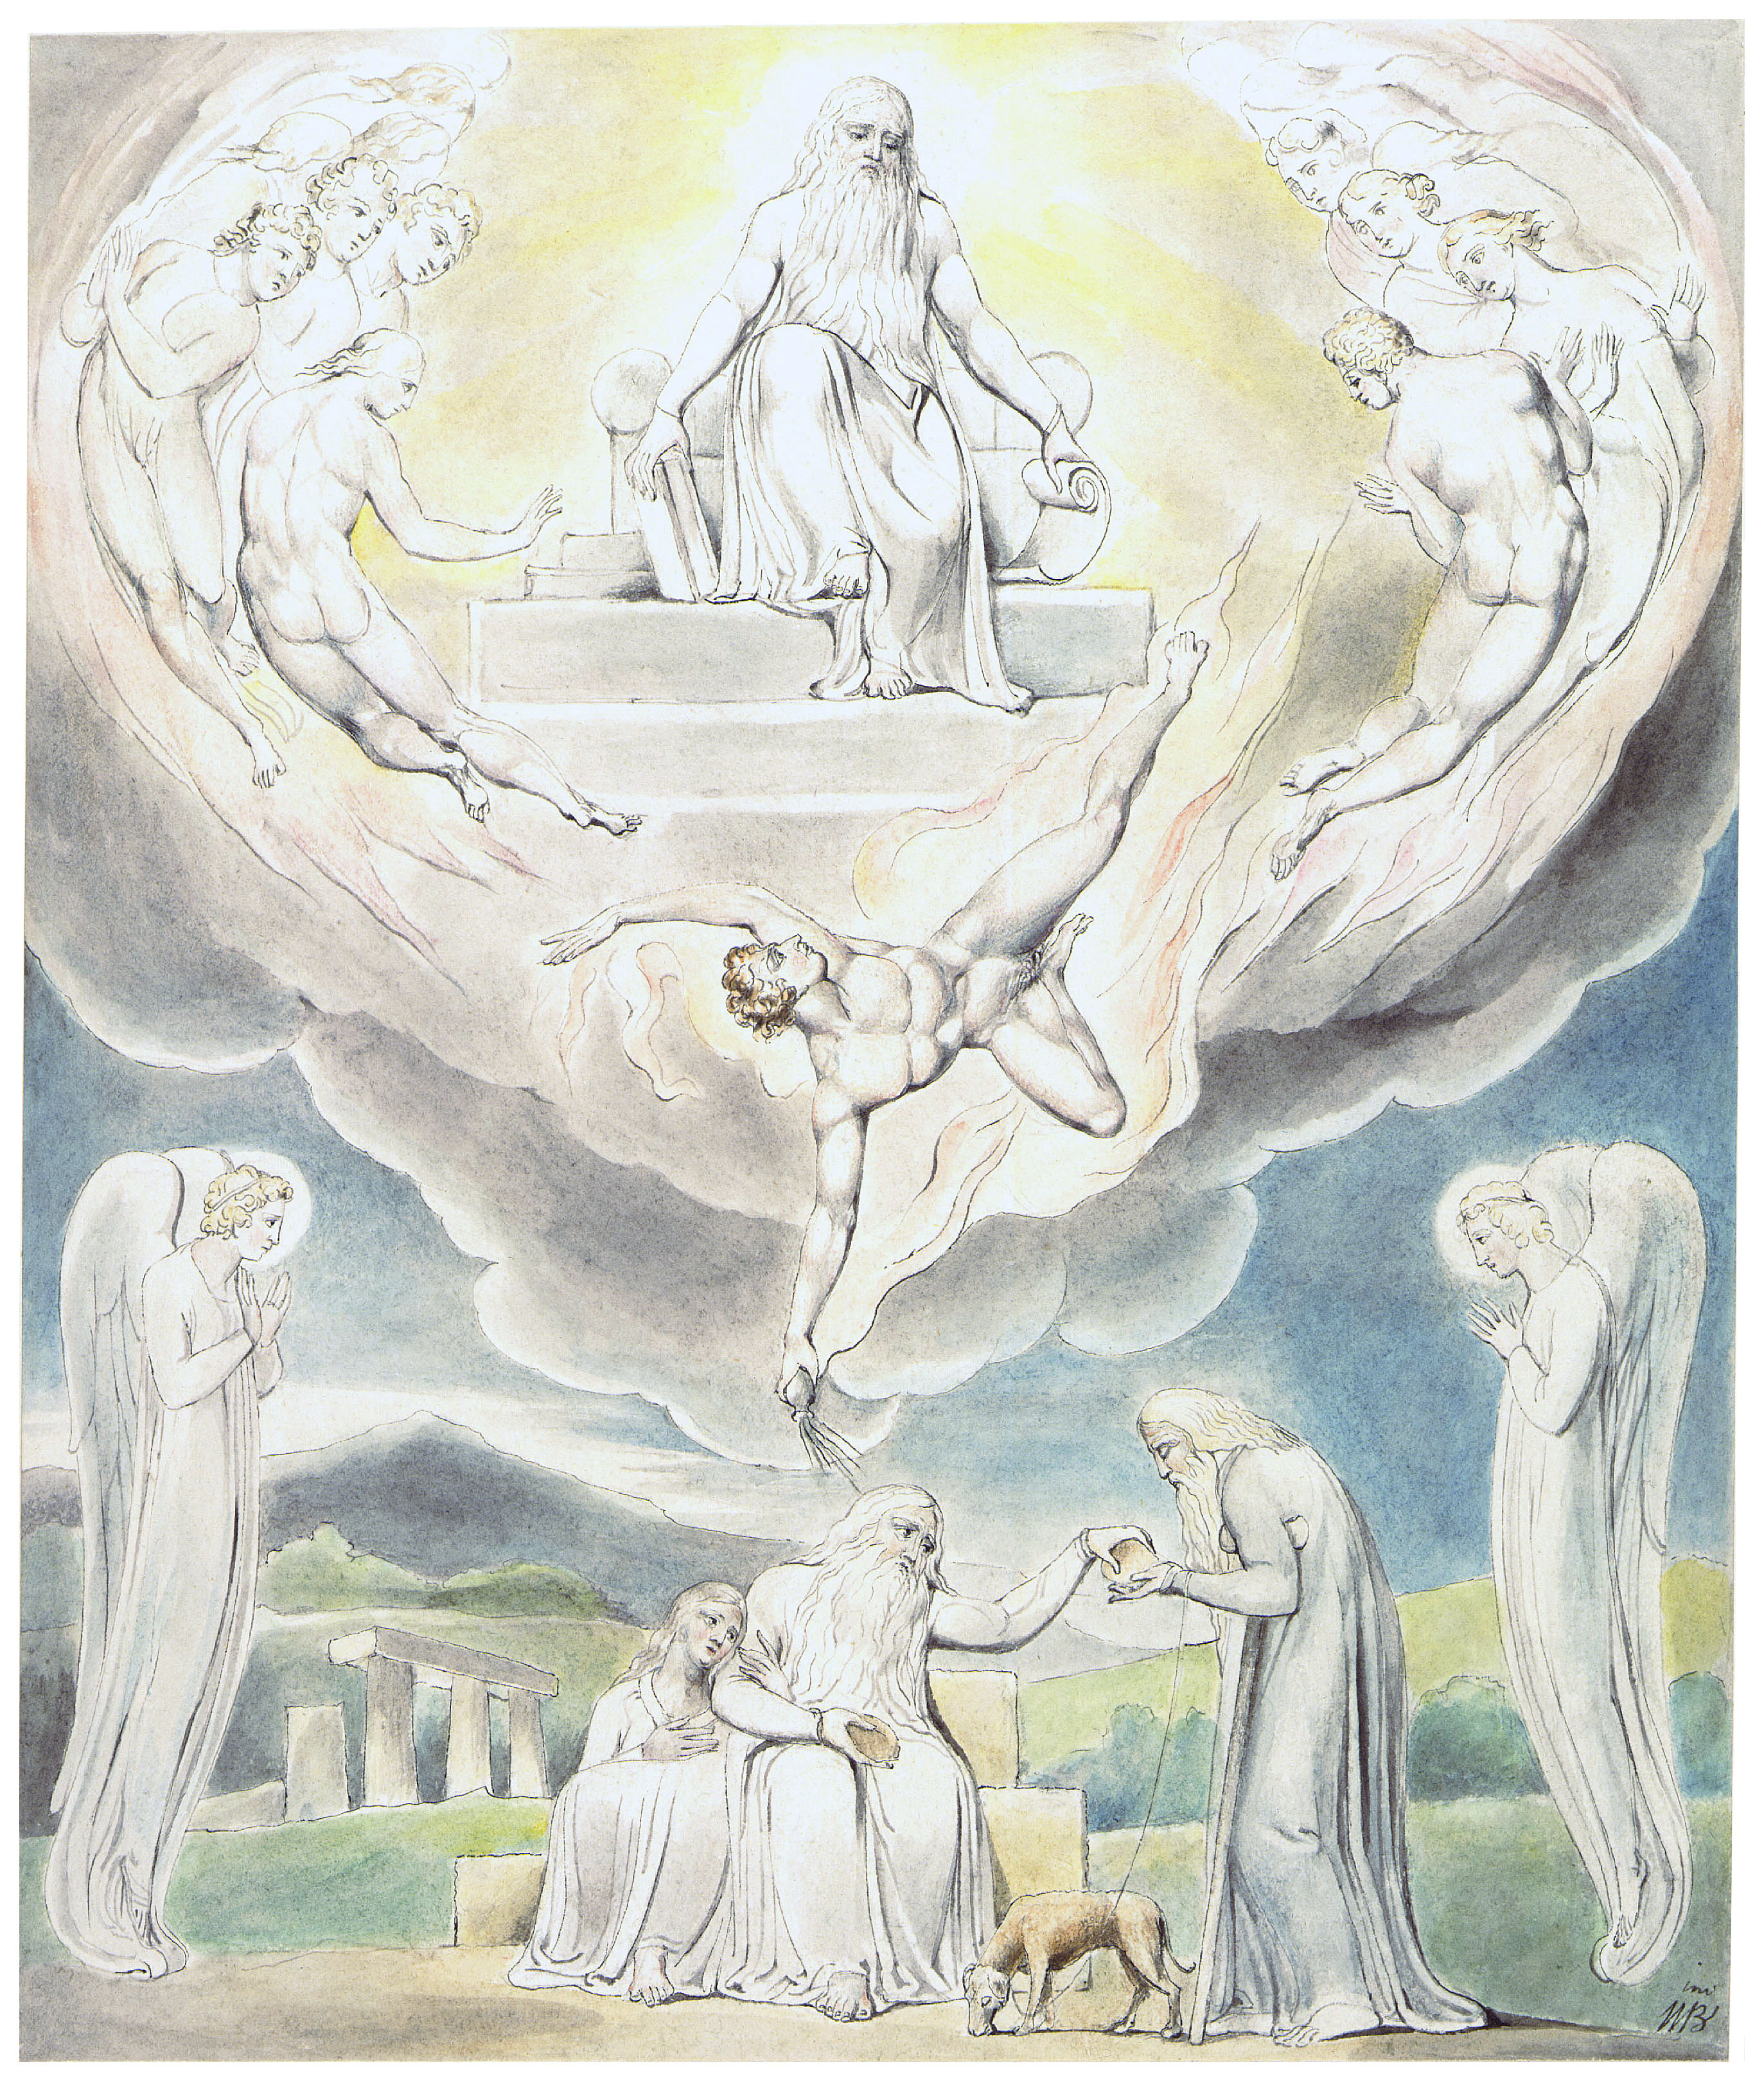 satan going forth from the presence of the lord by william blake 1805 morgan library new york